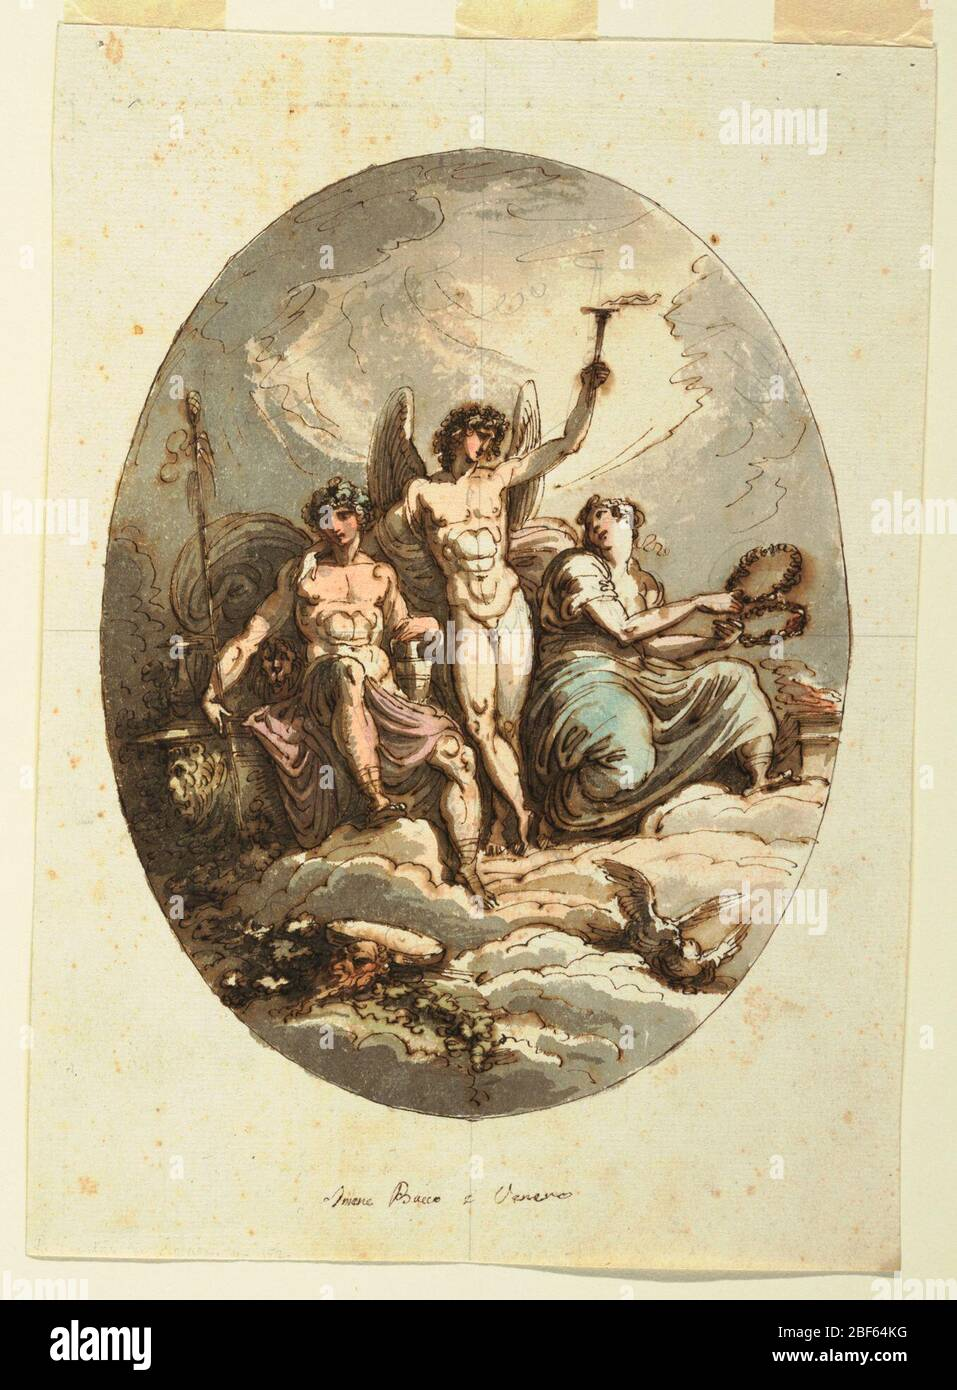 Design for Wall or Ceiling Decoration with Bacchus Hymen and Venus. Hymen standing, embraces Dionysos with right arm and raises torch with his left arm. At left Dionysos sits upon throne, together with lion; he leans left hand upon pitcher, supports hand thyrsos with right. Stock Photo